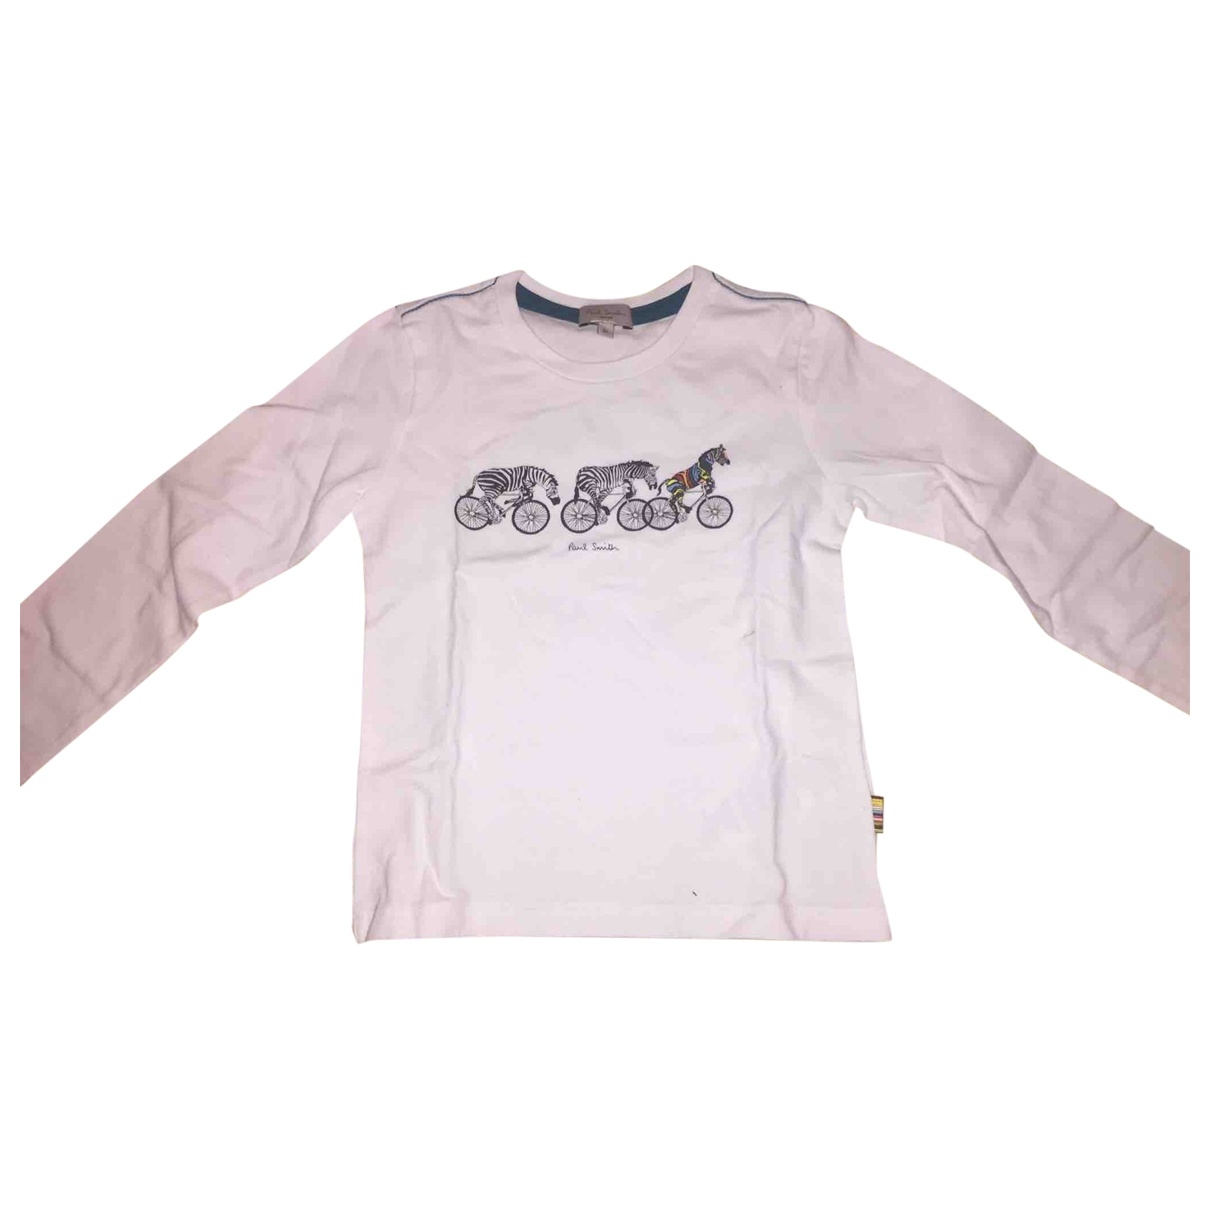 Paul Smith \N White Cotton  top for Kids 3 years - up to 98cm FR